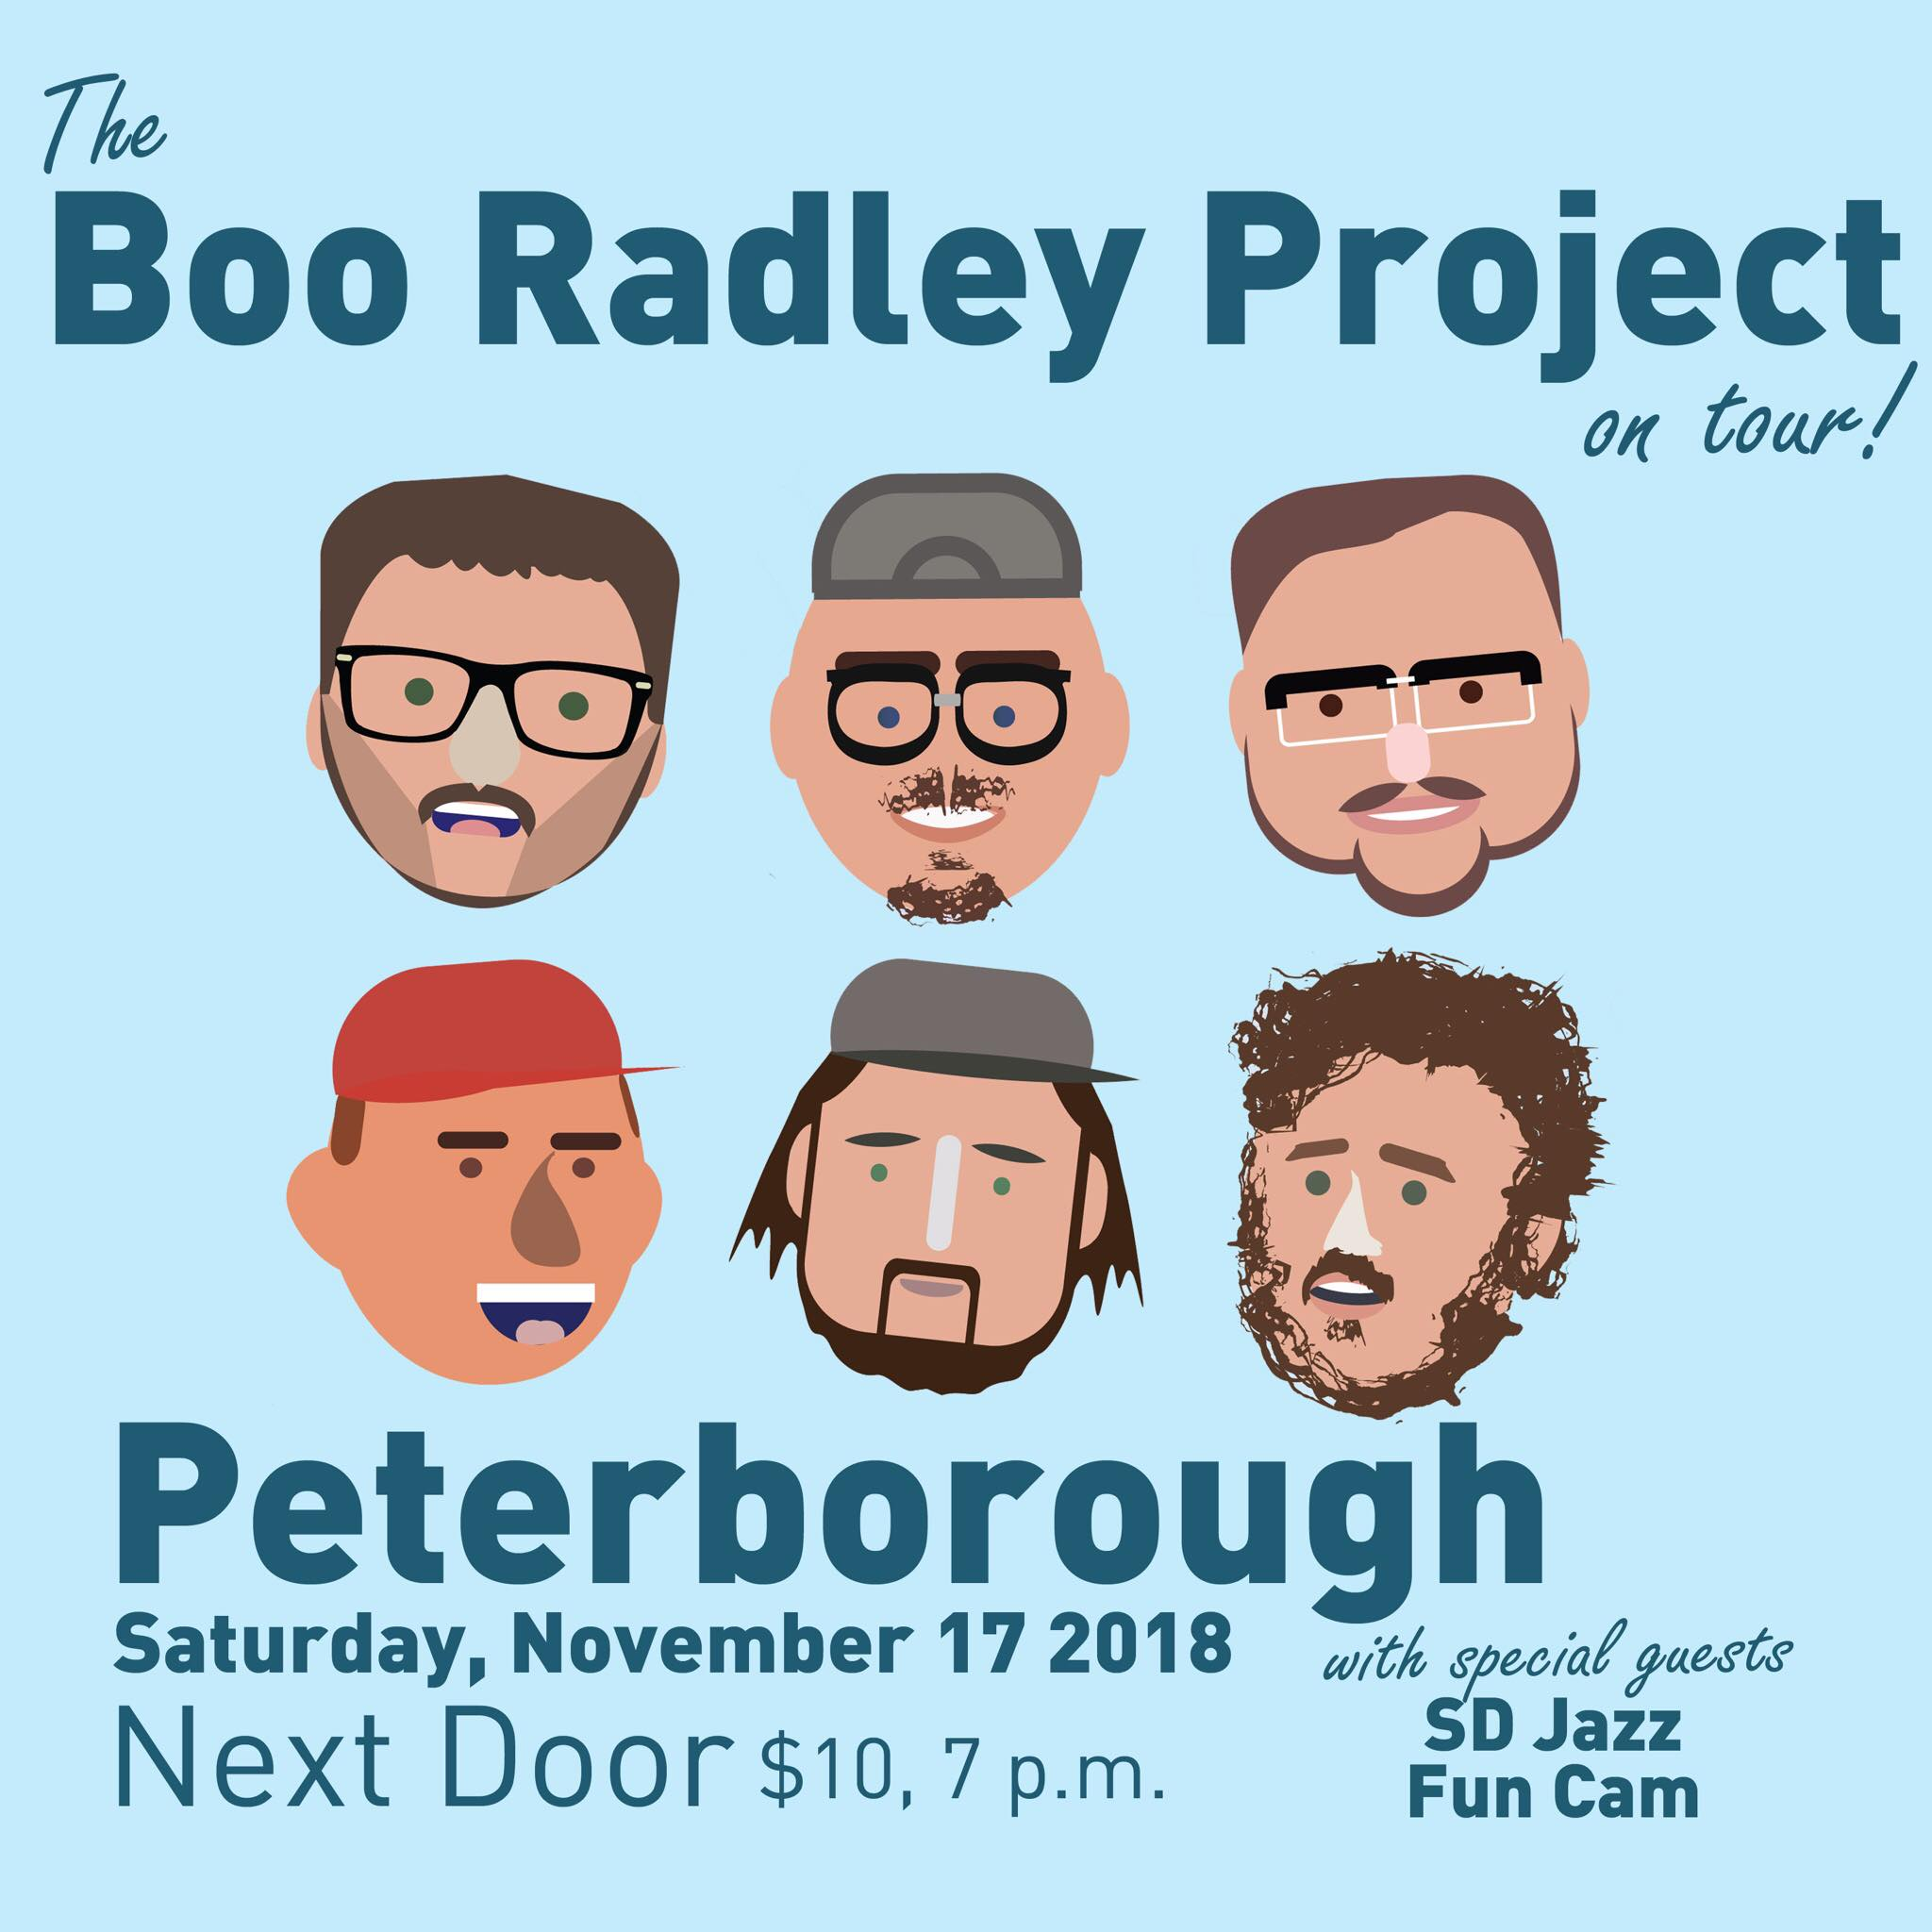 The Boo Radley Project